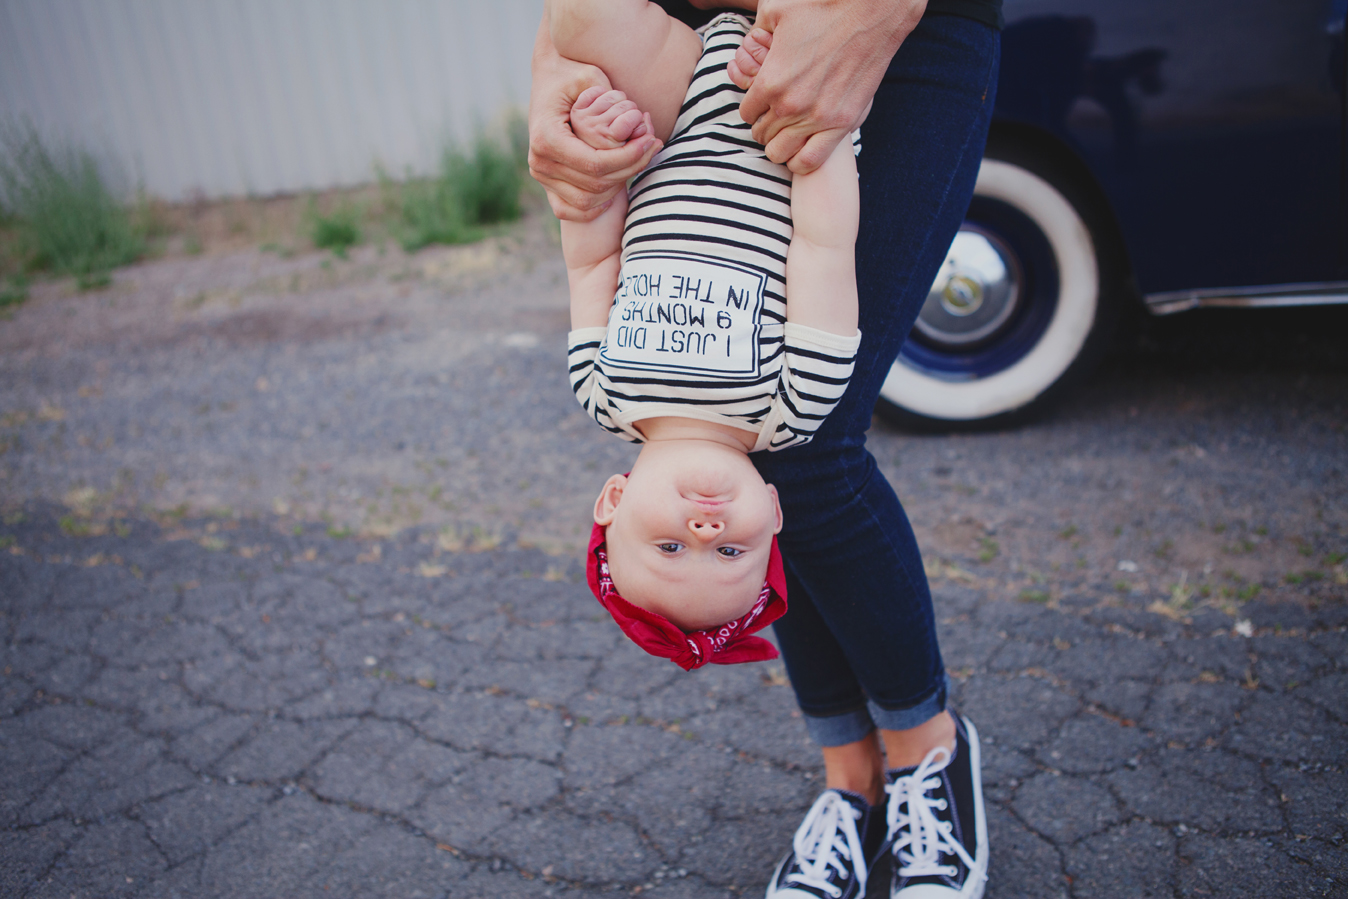 LPN-Rockabilly-Funny-Baby-Onesies-Lil-Poopie-Nation-Alternative-Hipster-Baby-Clothes-001small.jpg